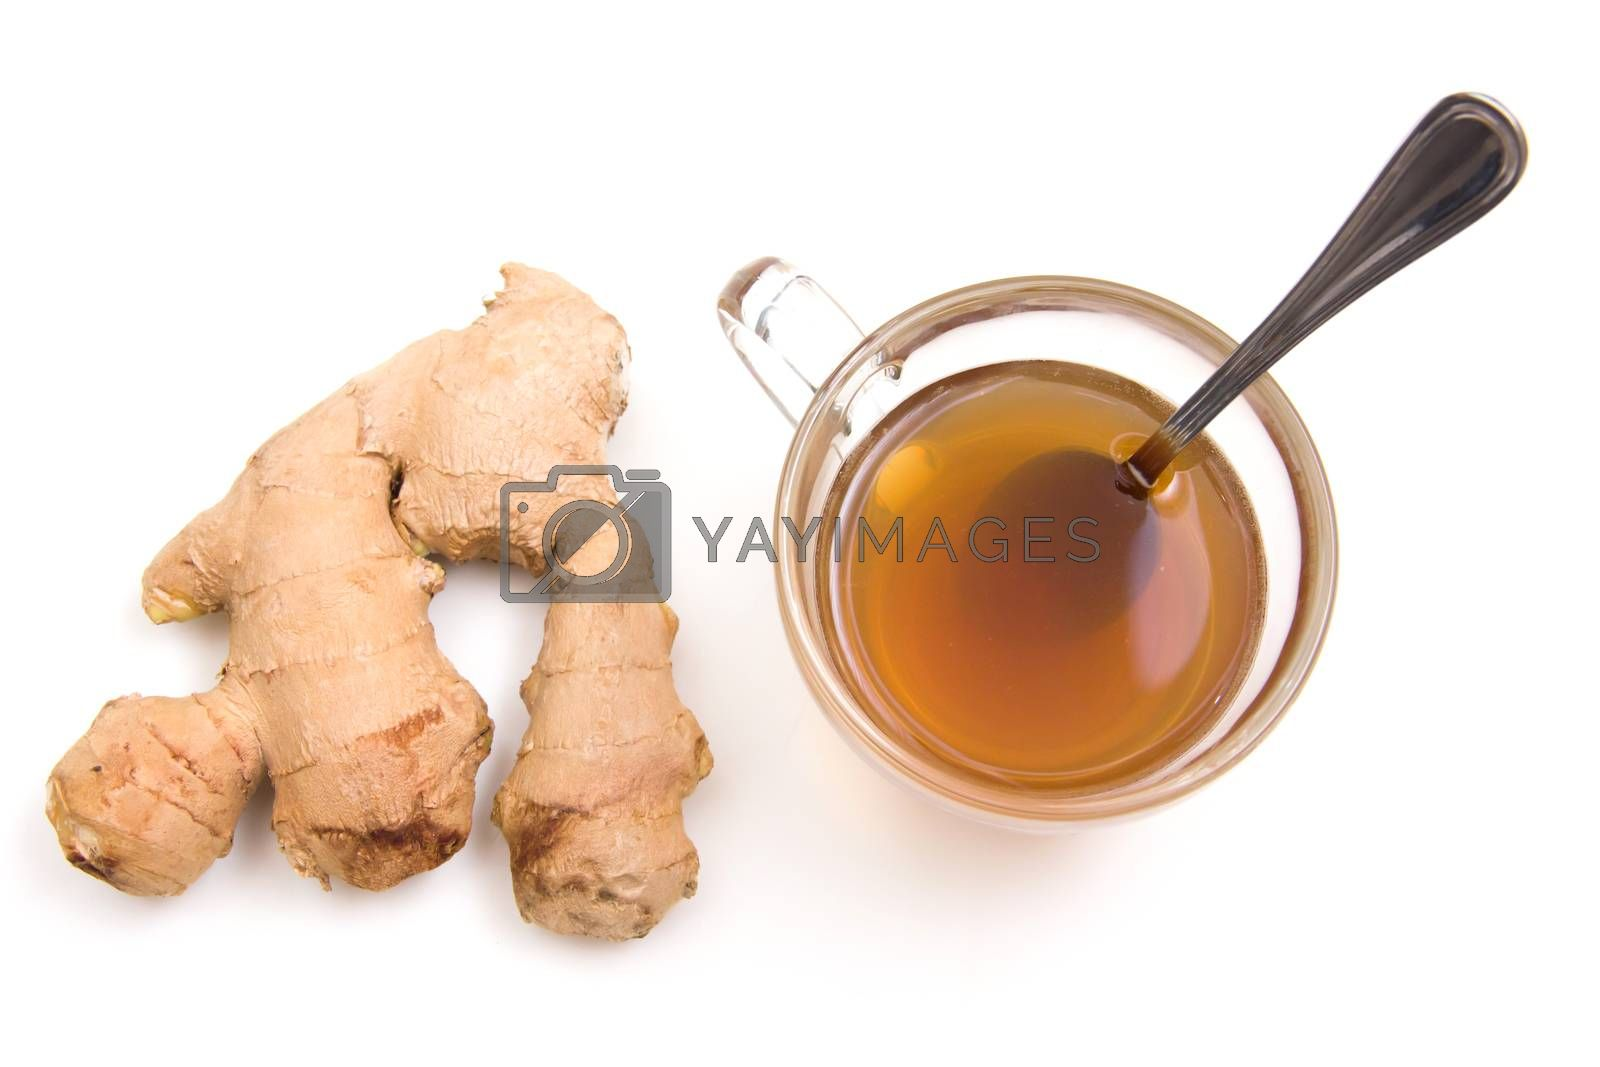 Tea with ginger on a white background seen from above